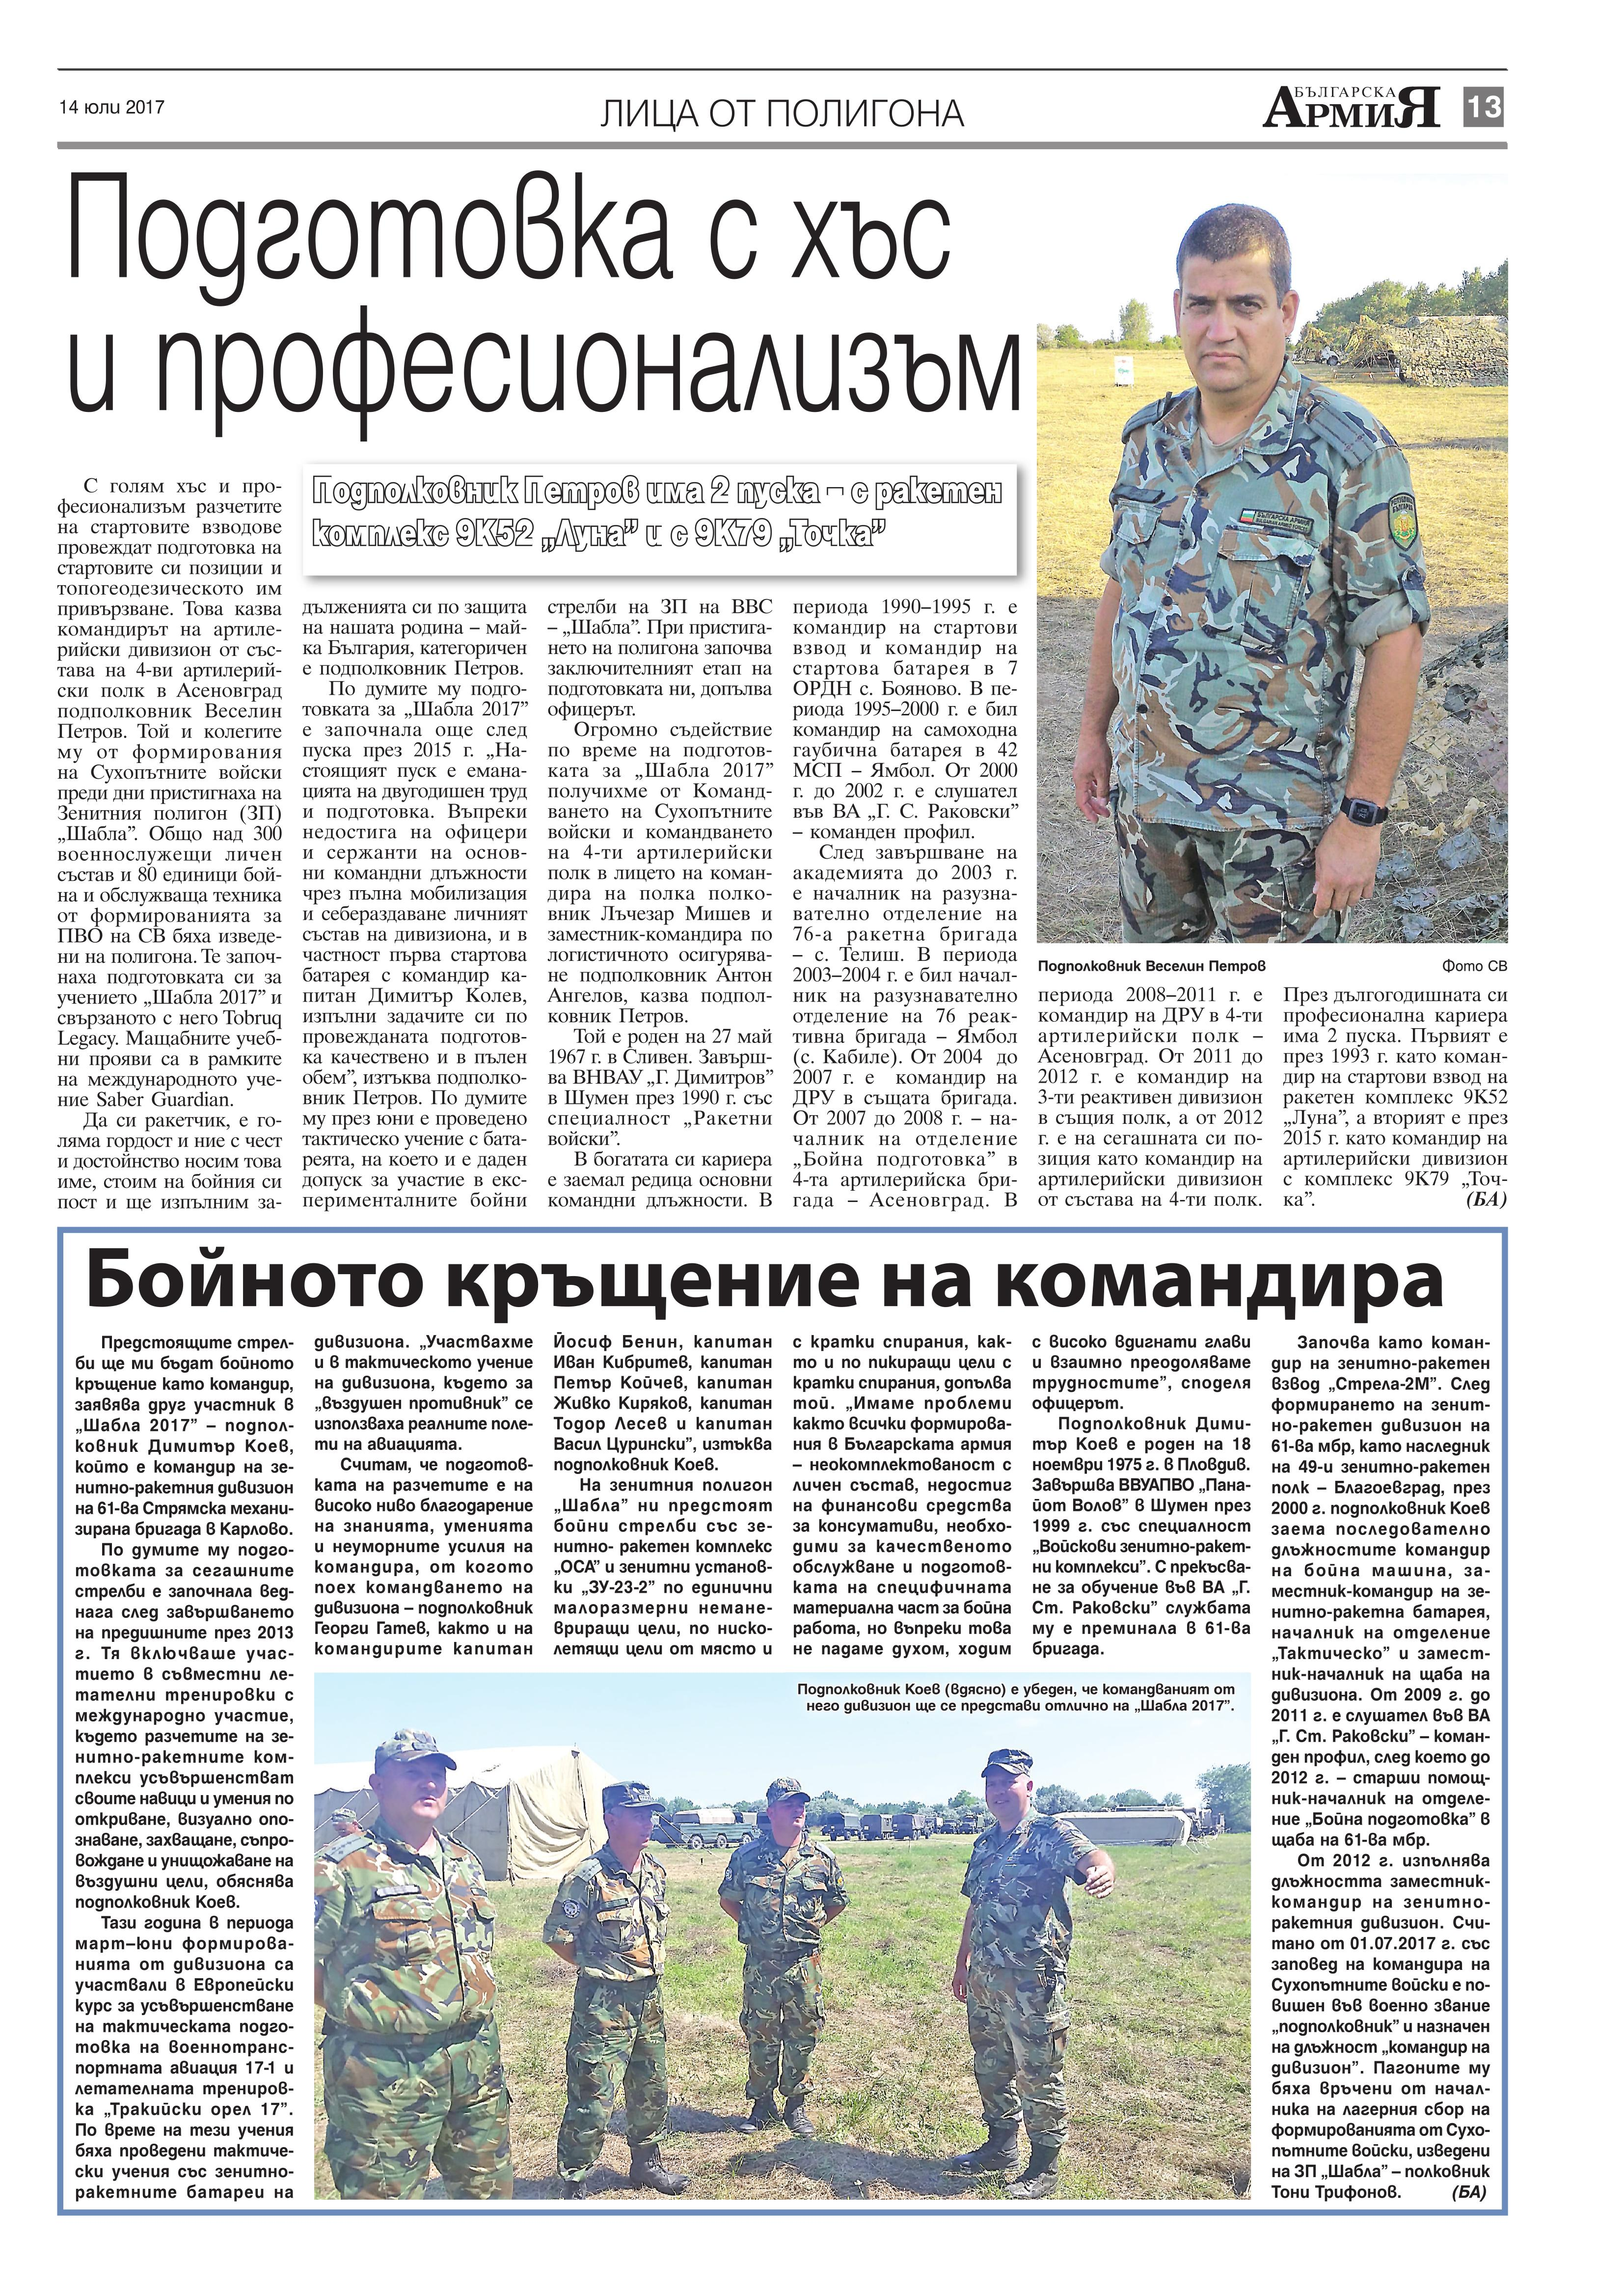 https://www.armymedia.bg/wp-content/uploads/2015/06/13.page1_-25.jpg